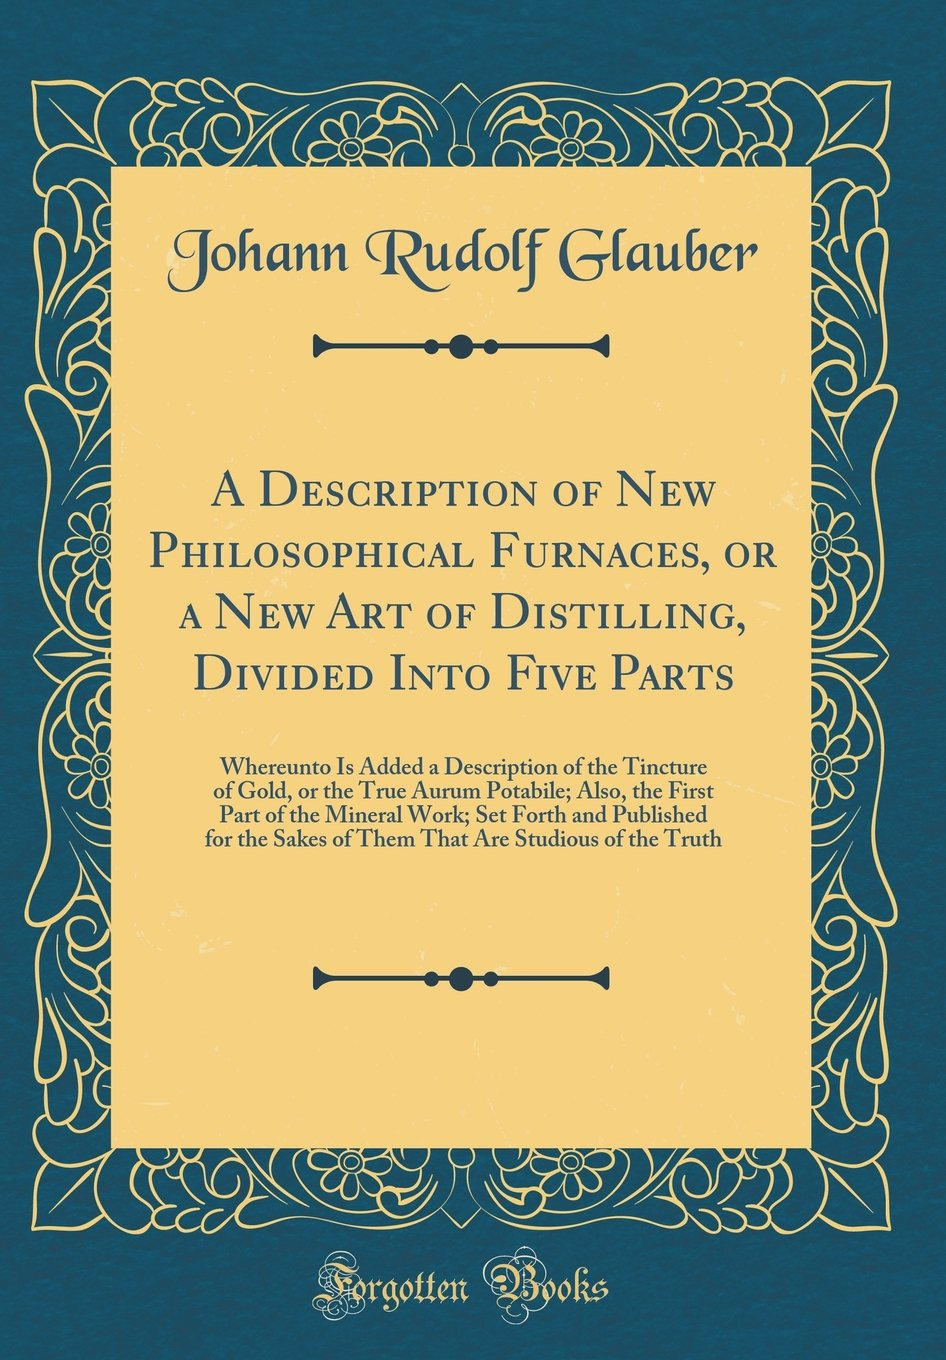 Download A Description of New Philosophical Furnaces, or a New Art of Distilling, Divided Into Five Parts: Whereunto Is Added a Description of the Tincture of ... Mineral Work; Set Forth and Published for t ebook